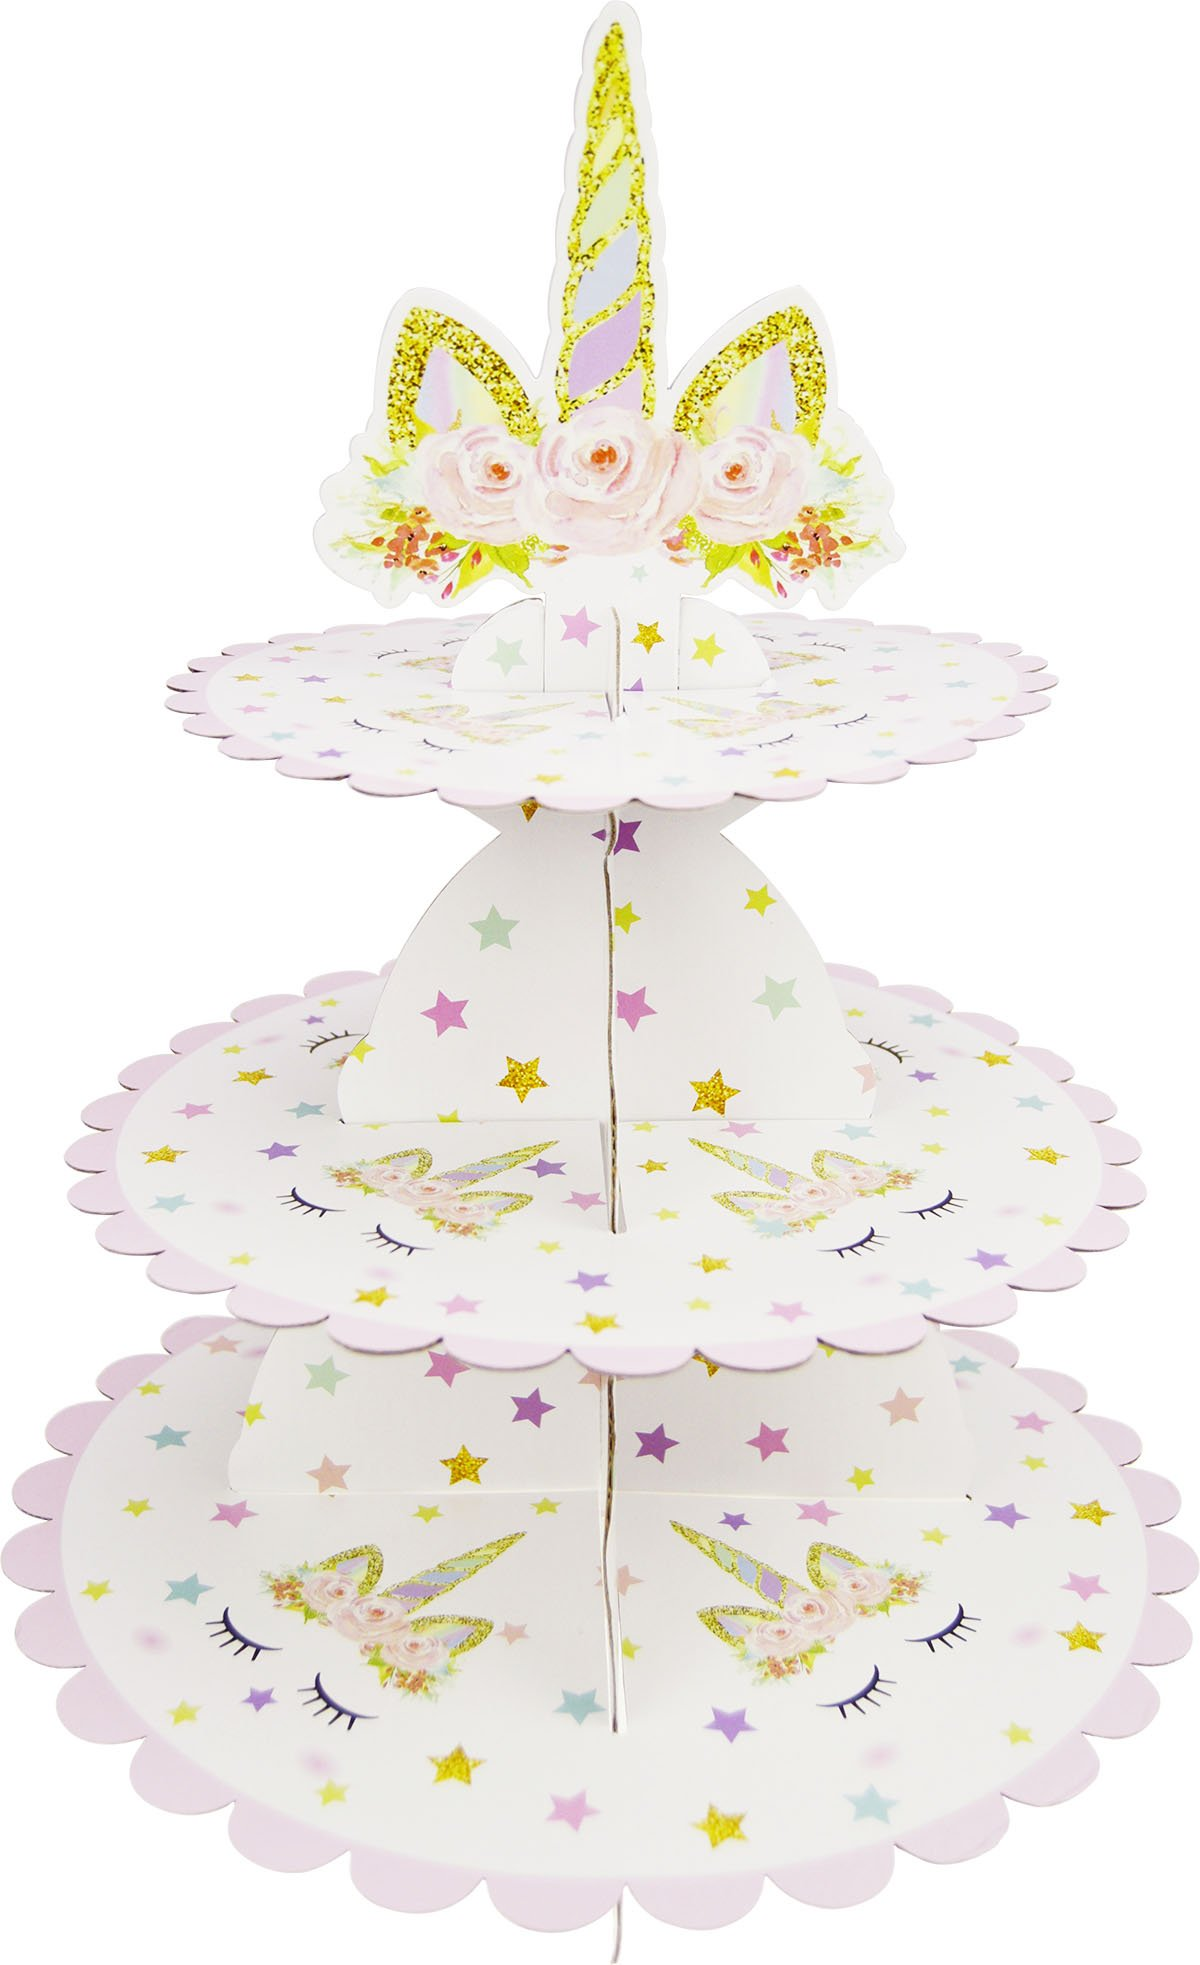 Betop House 3-Tire Unicorn Themed Party Cupcakes Muffins Dessert Stand Party Supplies